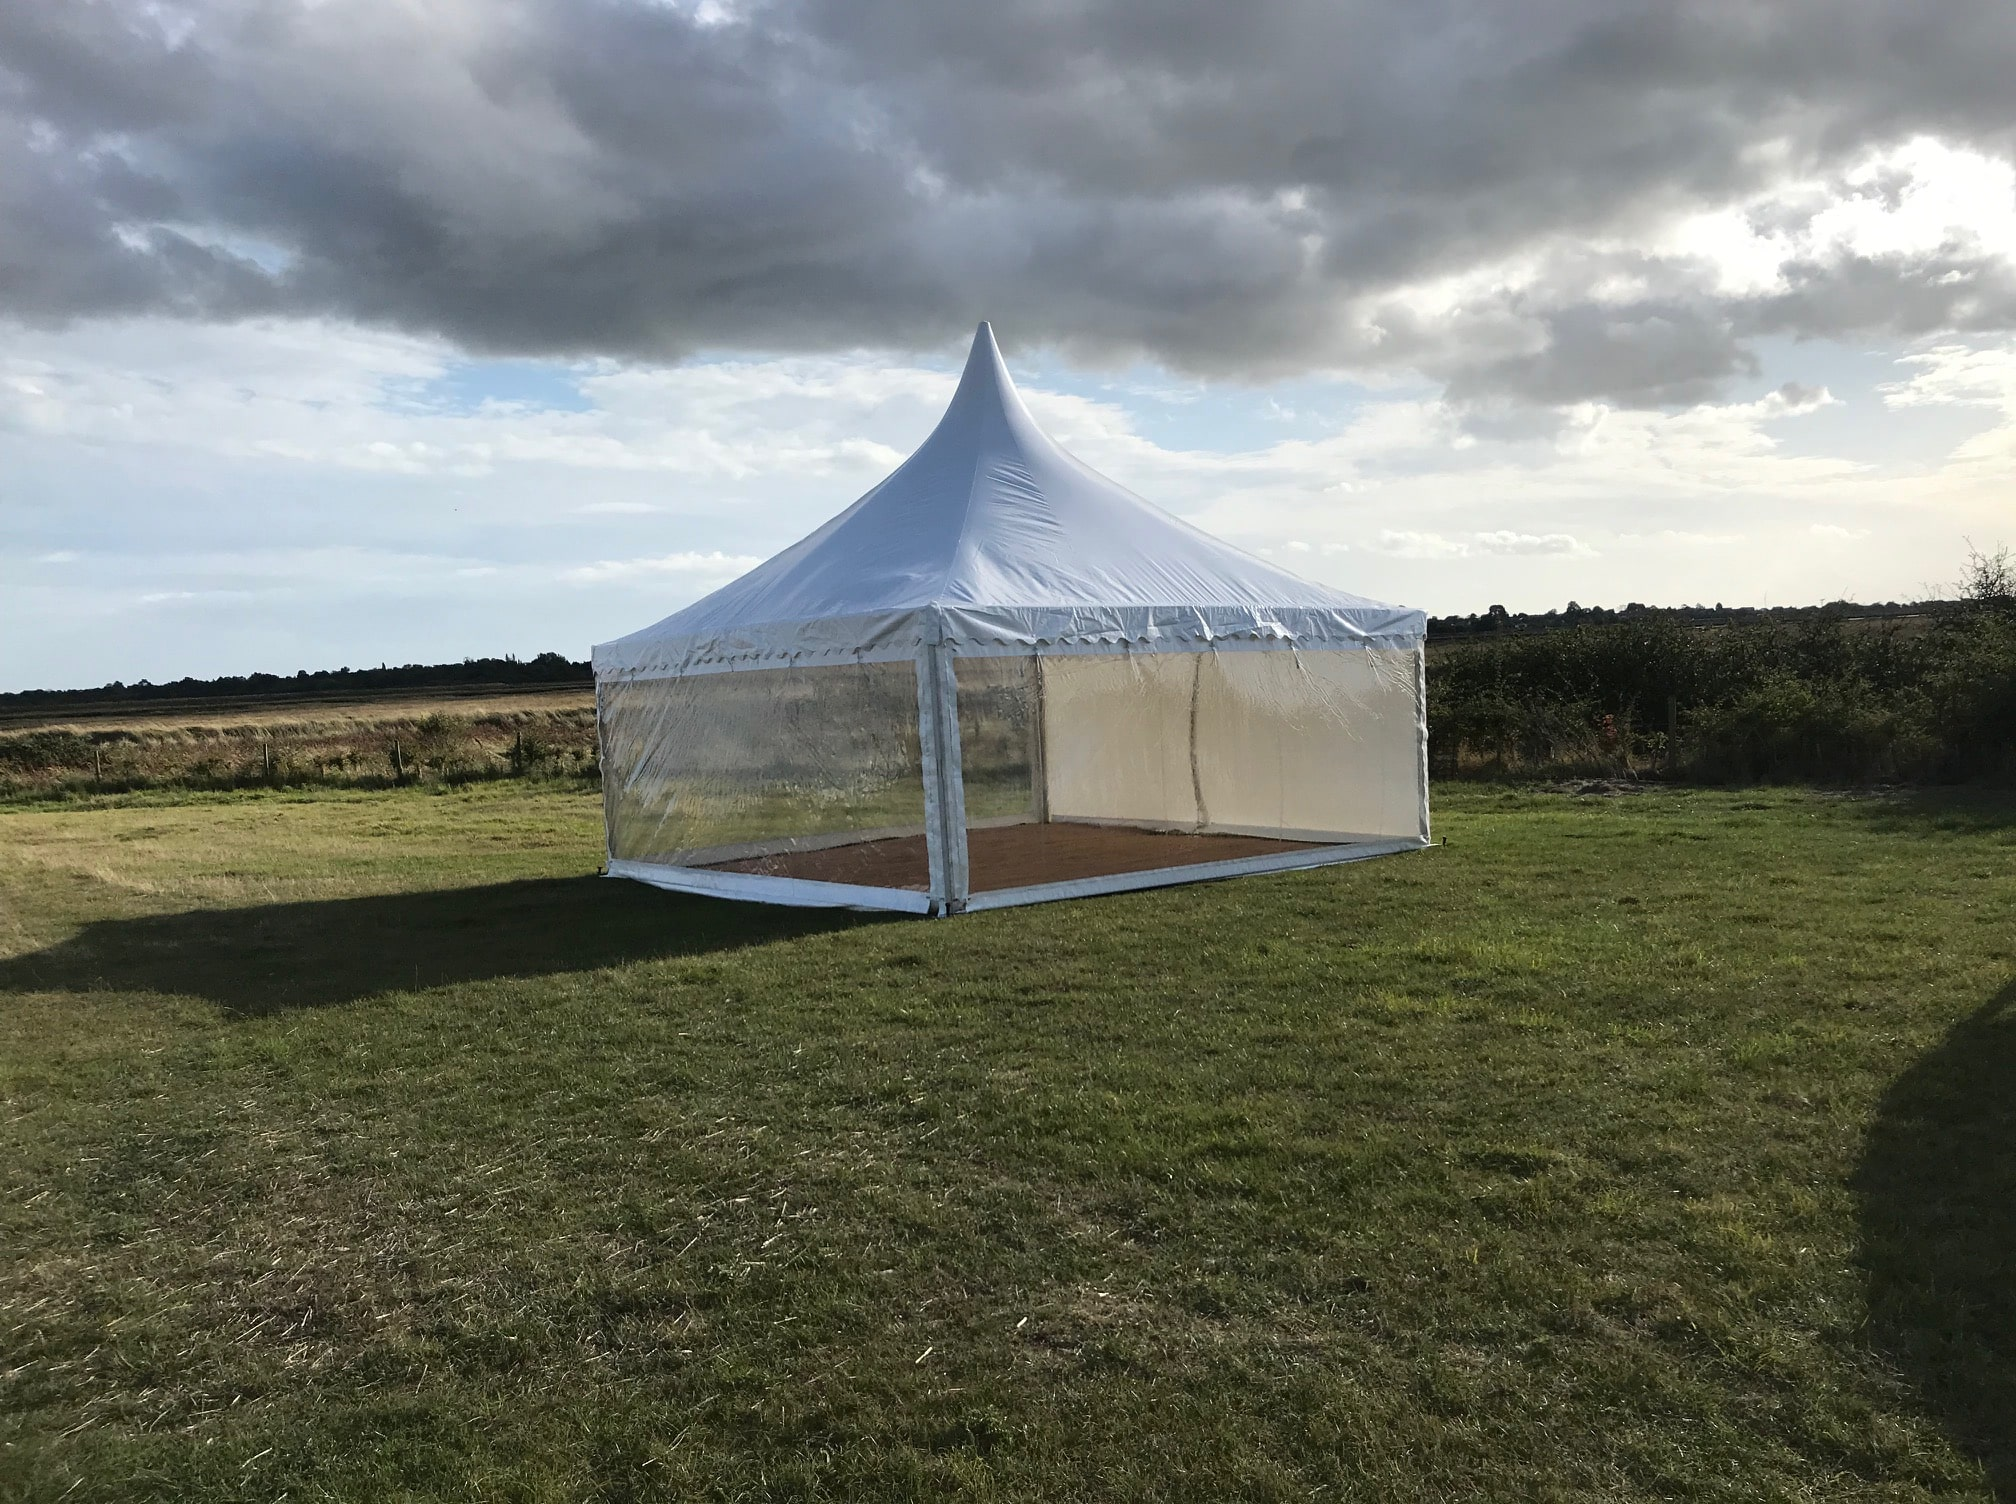 Canopies and pagodas, Chinese Hat marquee in farmers field